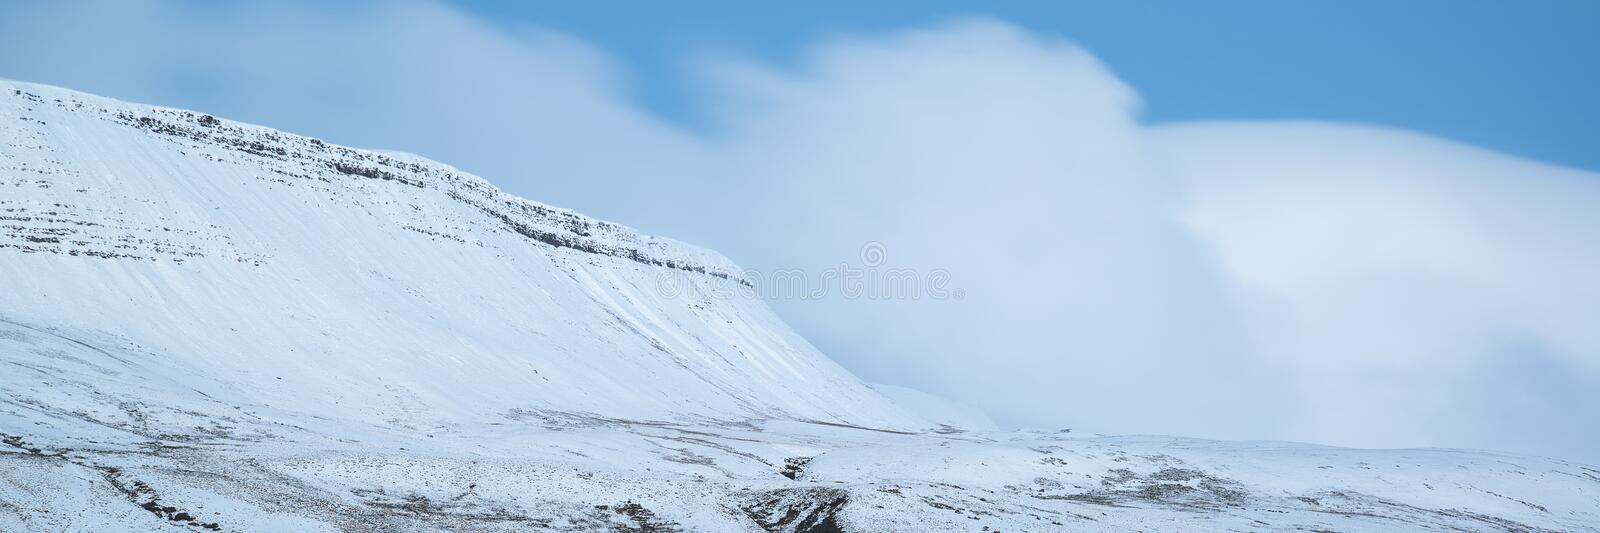 Stunning Winter panoramic landscape snow covered countryside wit. H mountain range royalty free stock images